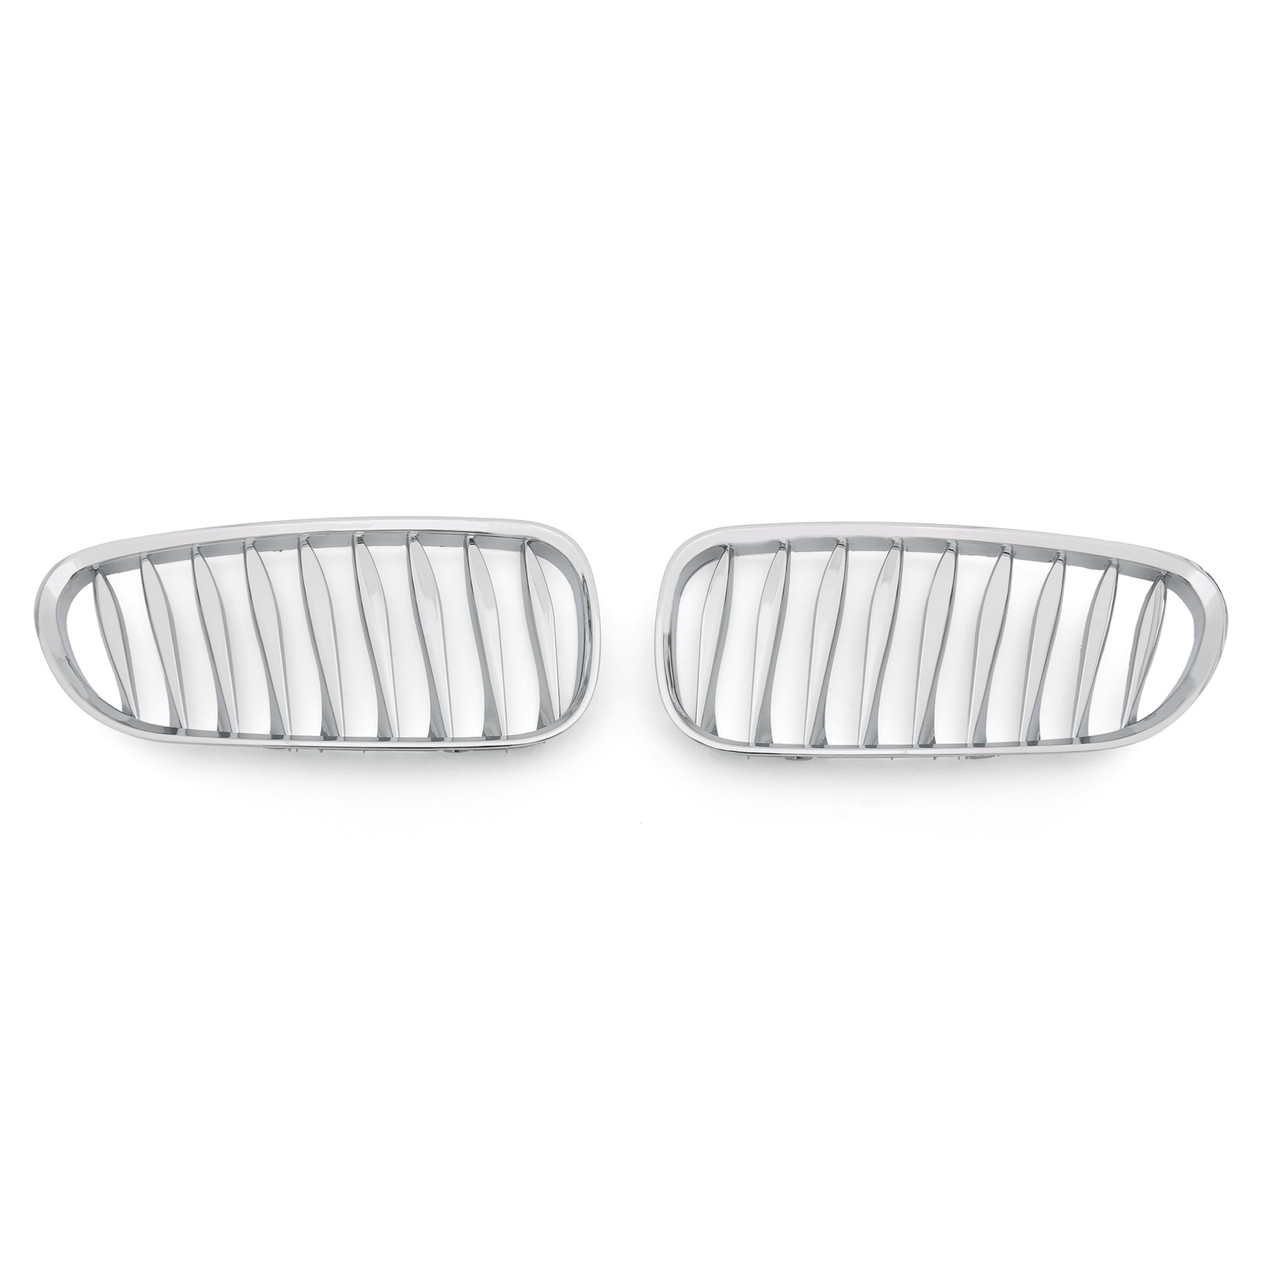 Sports Kidney Grille Grill For BMW Z4 E85 E86 (2003-2008), Chrome